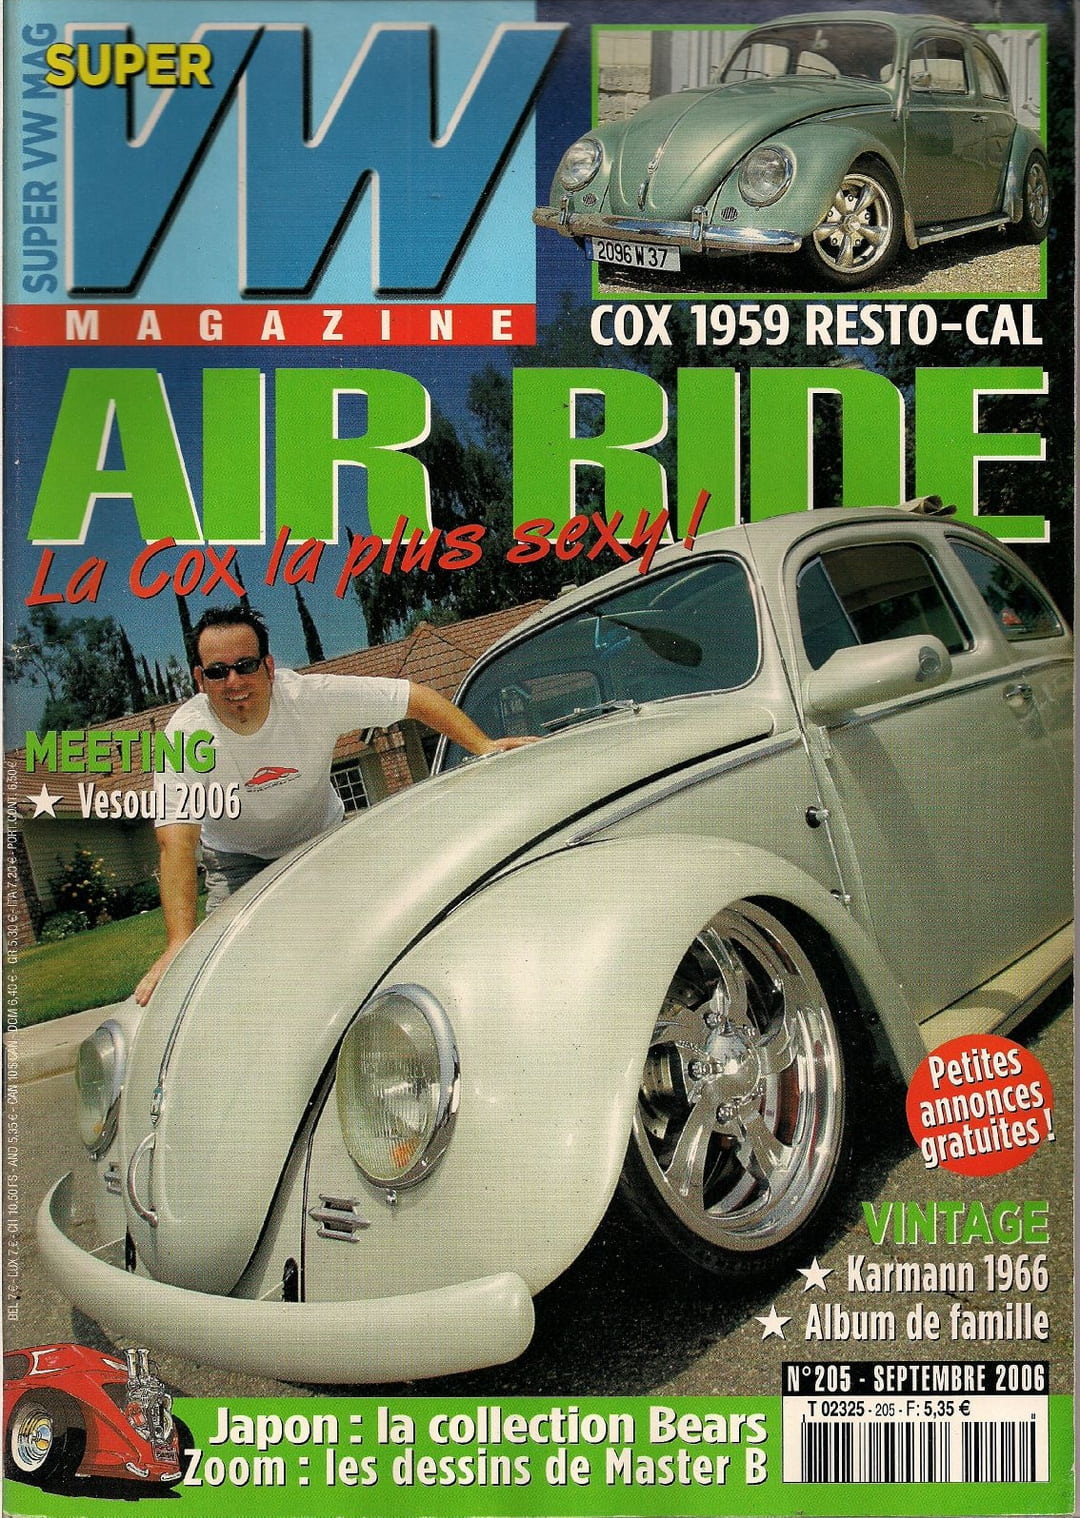 super vw magazine n 205 air ride cox 1959 resto cal septembre 2006 ebay. Black Bedroom Furniture Sets. Home Design Ideas